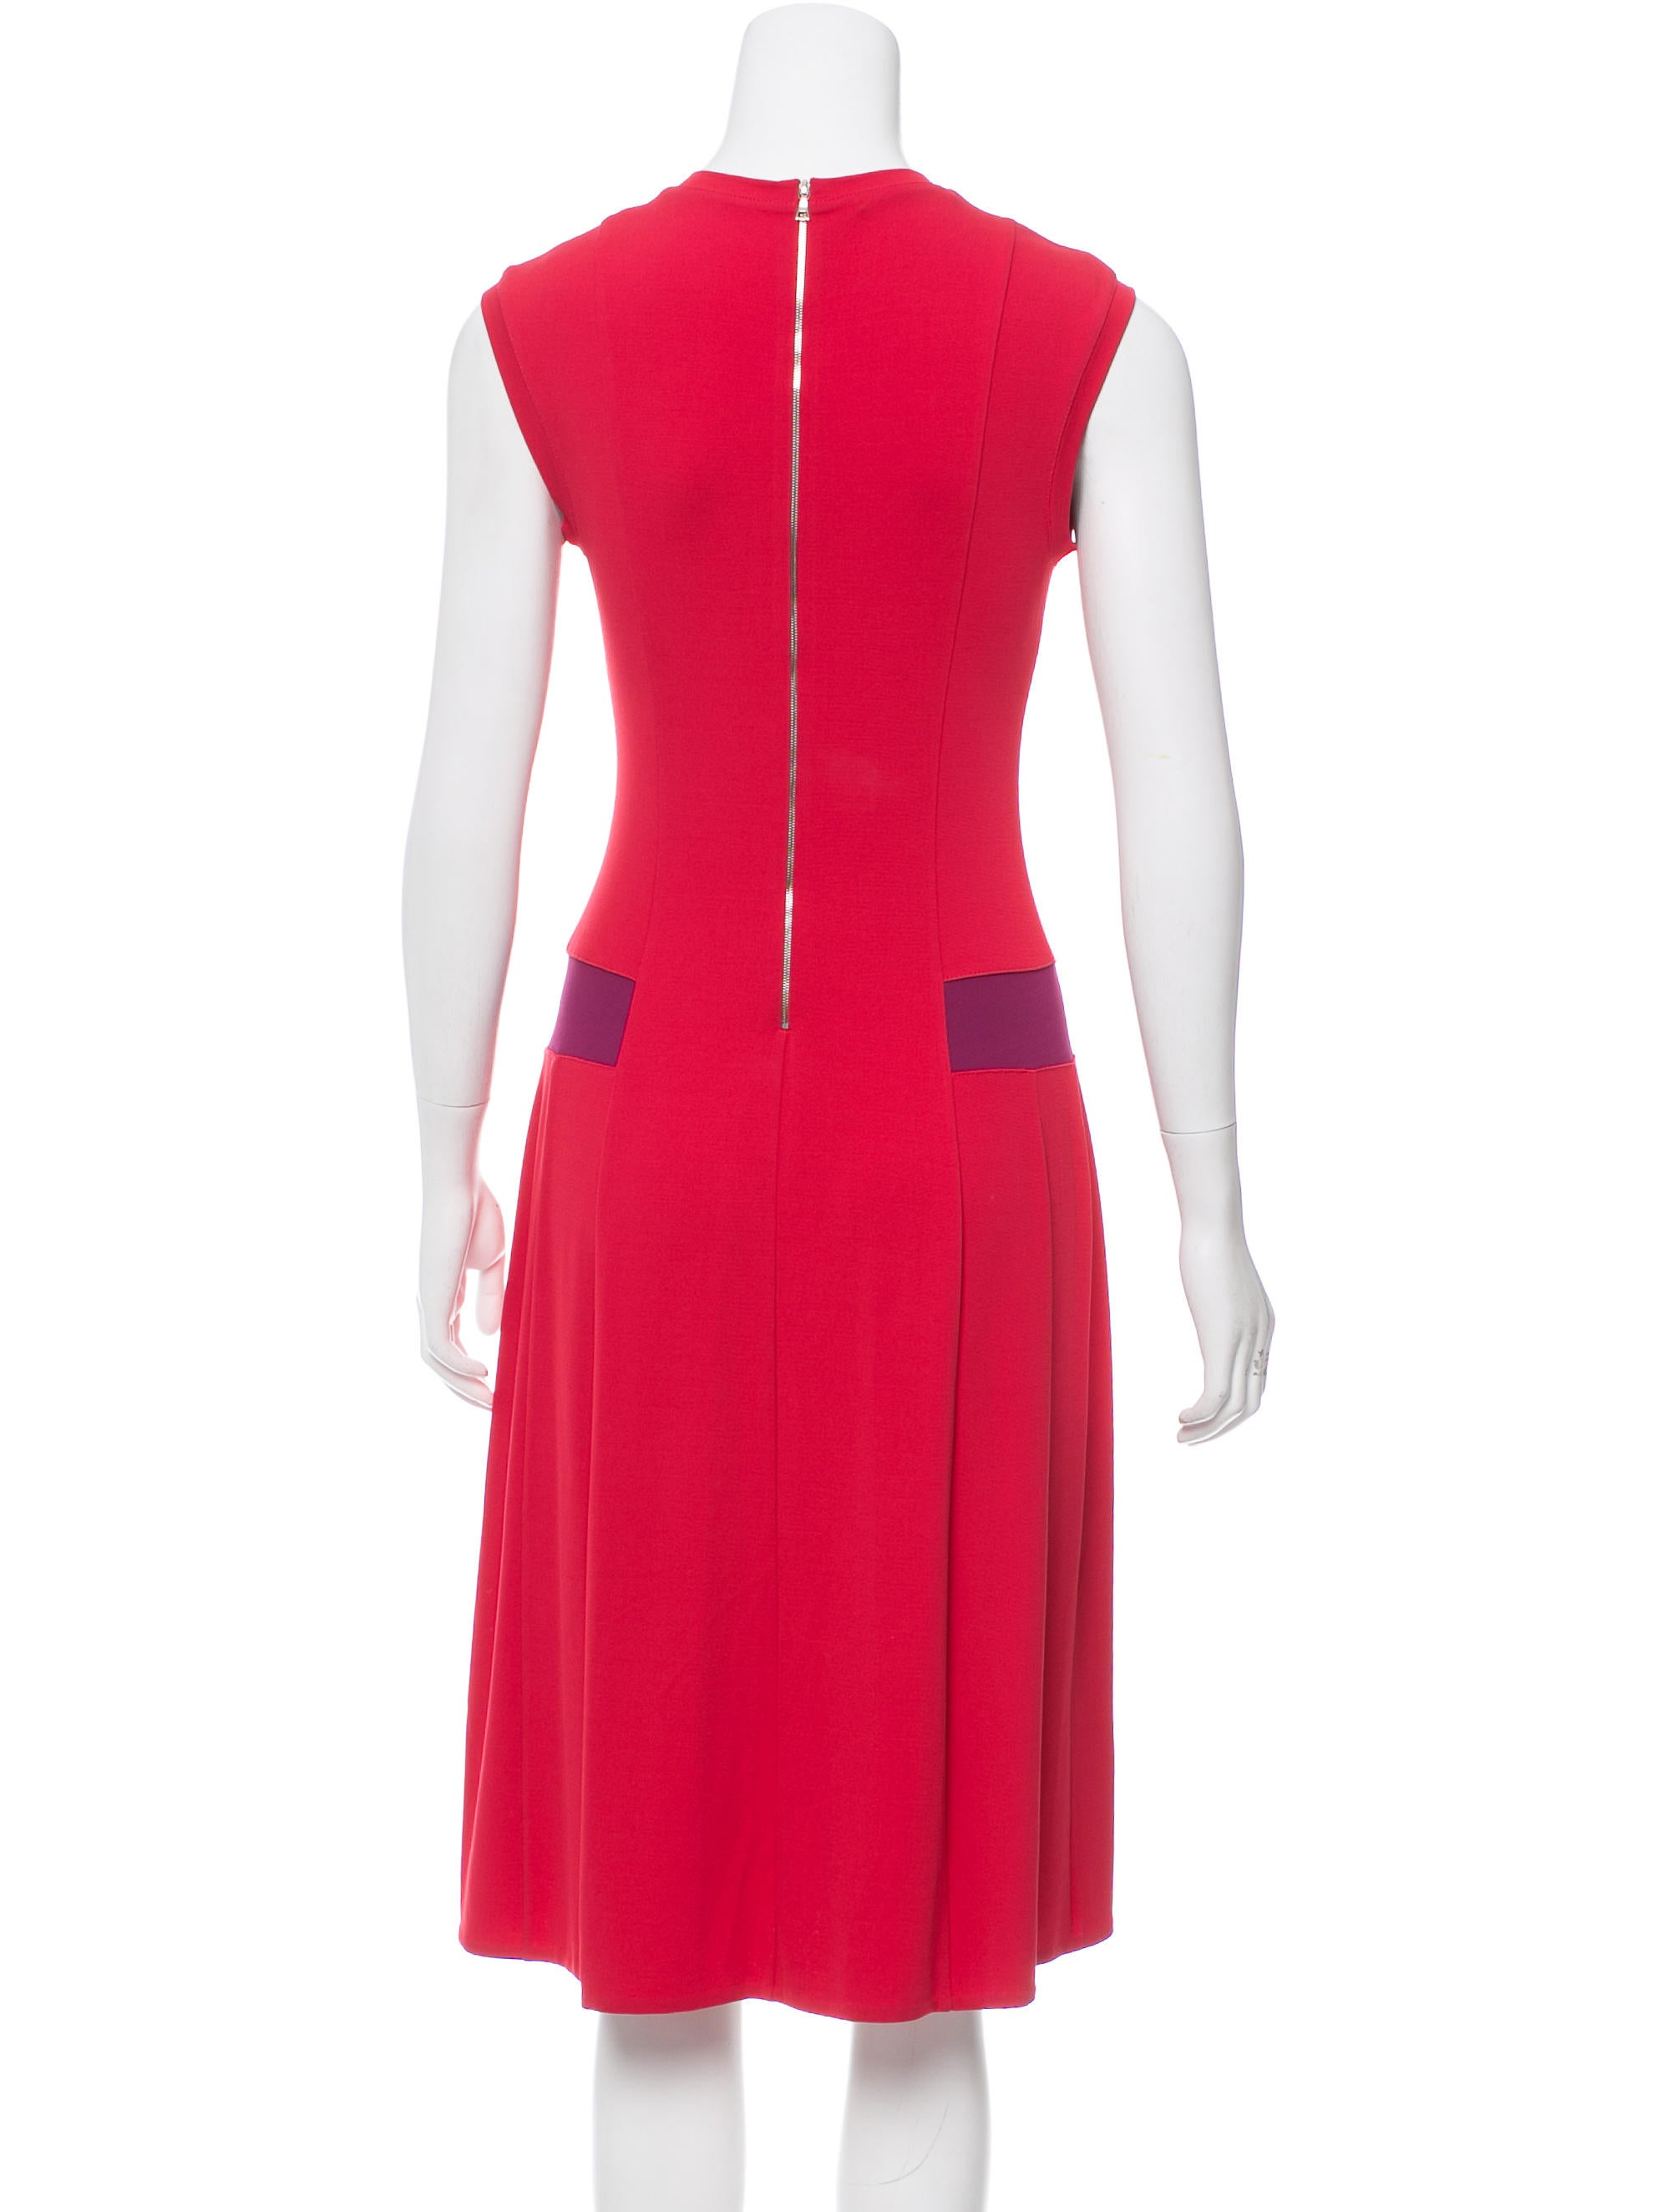 SOCIETY NEW YORK Women's Colorblock Sheath Dress Amazon Best Sellers Rank: #2,, in Clothing, Shoes & Jewelry (See Top in Clothing, SOCIETY NEW YORK Women's Scoop Neck Cap Sleeve Dress out of 5 stars 2. $ SOCIETY NEW YORK Women's Jacquard Panel Dress/5(4).